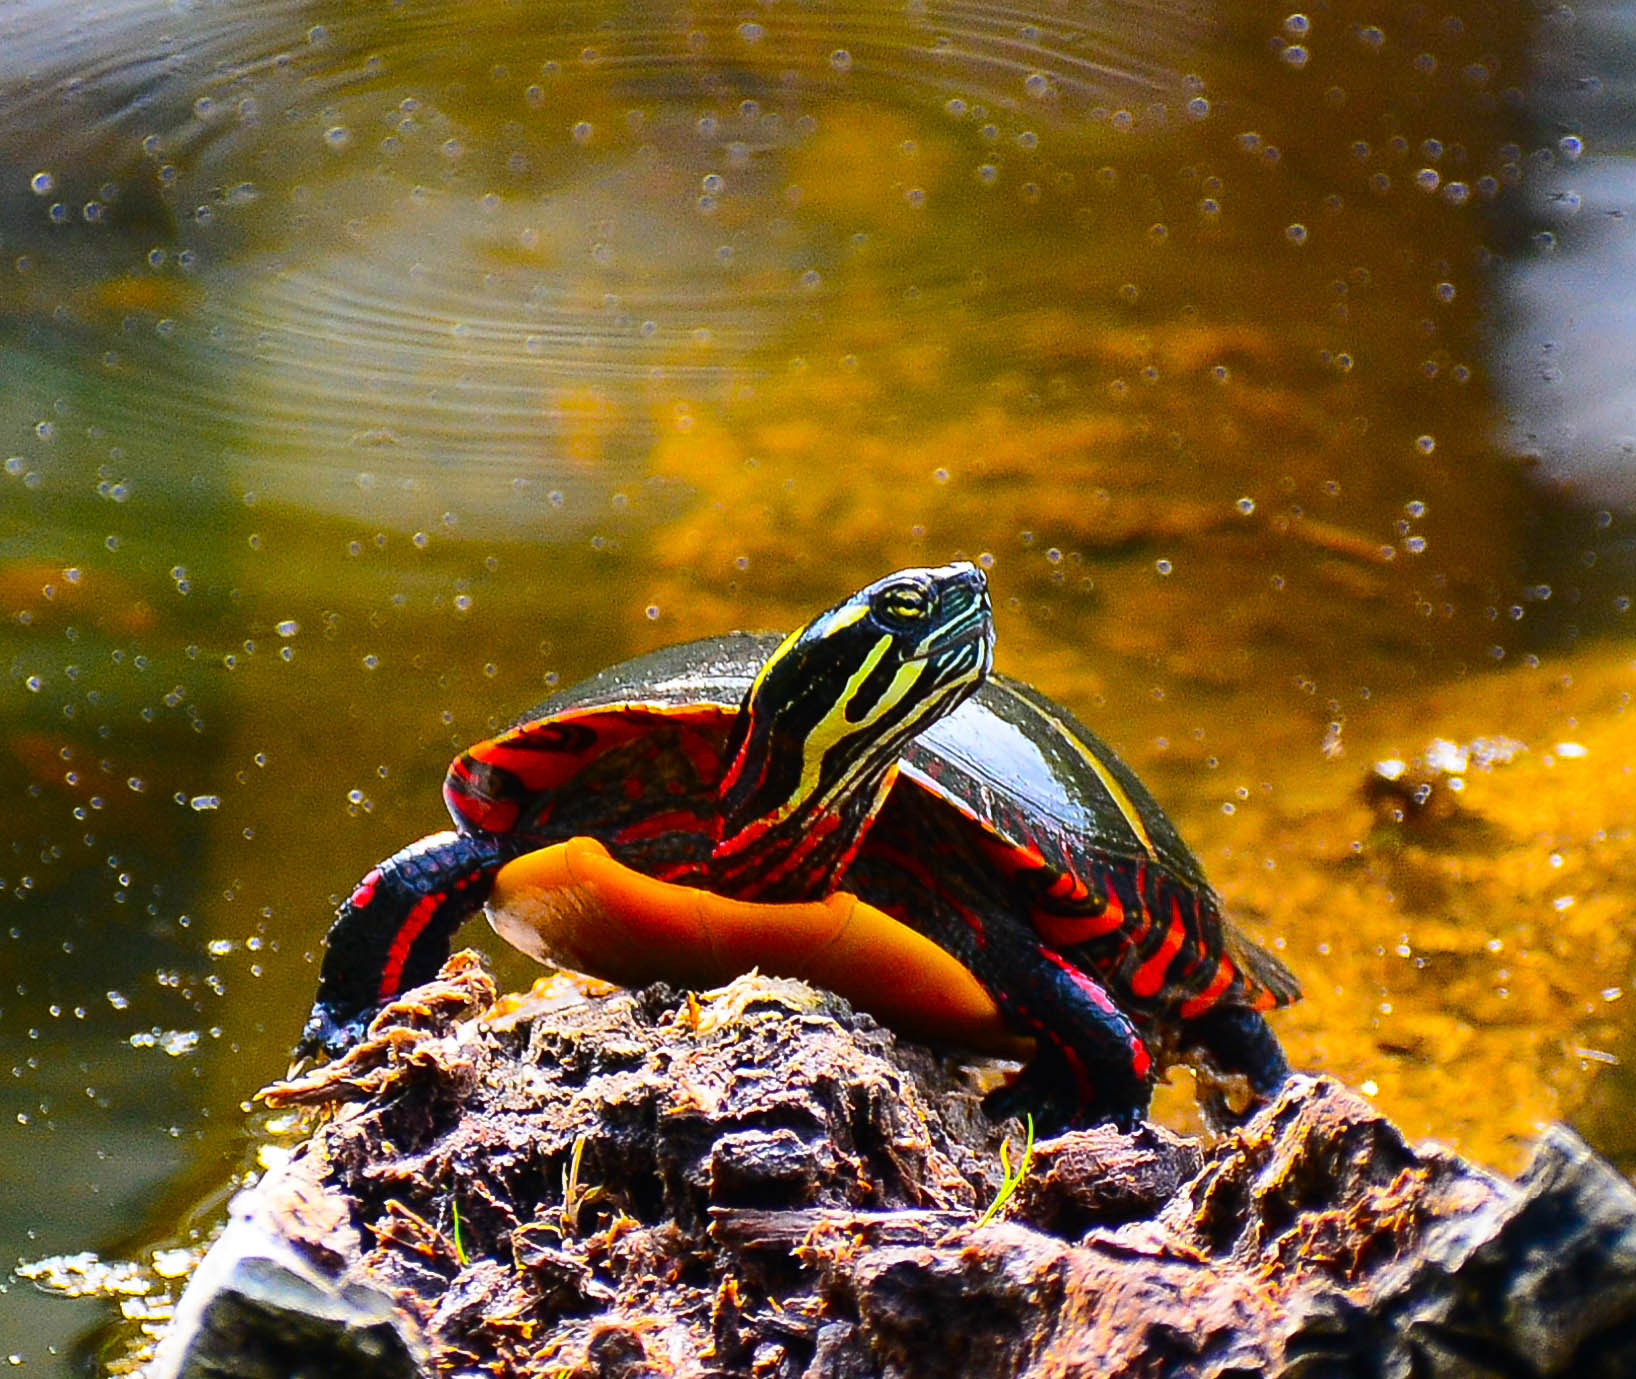 Northern painted turtles come out of estivation and vie for the best sunning logs.